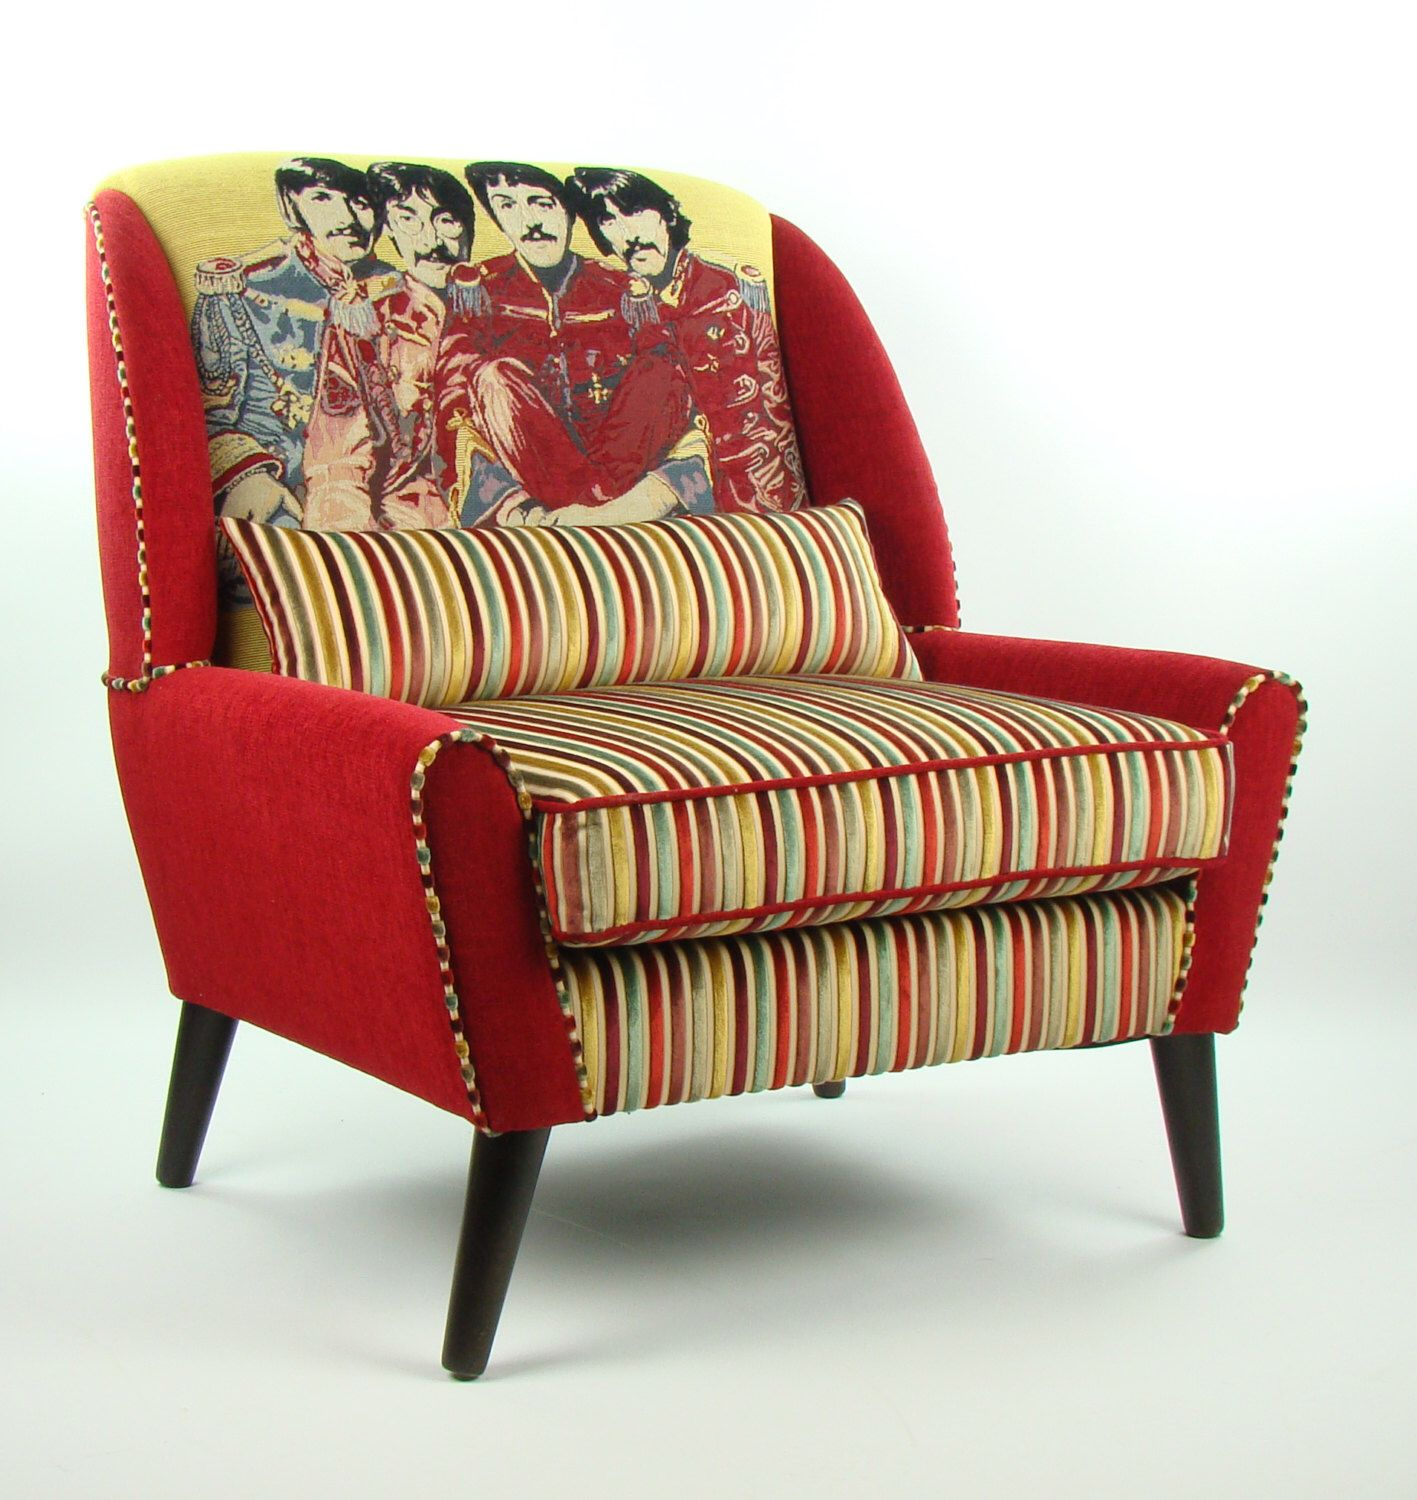 Retro The Beatles Armchair Andrew Martin Fabric by JustinaDesign